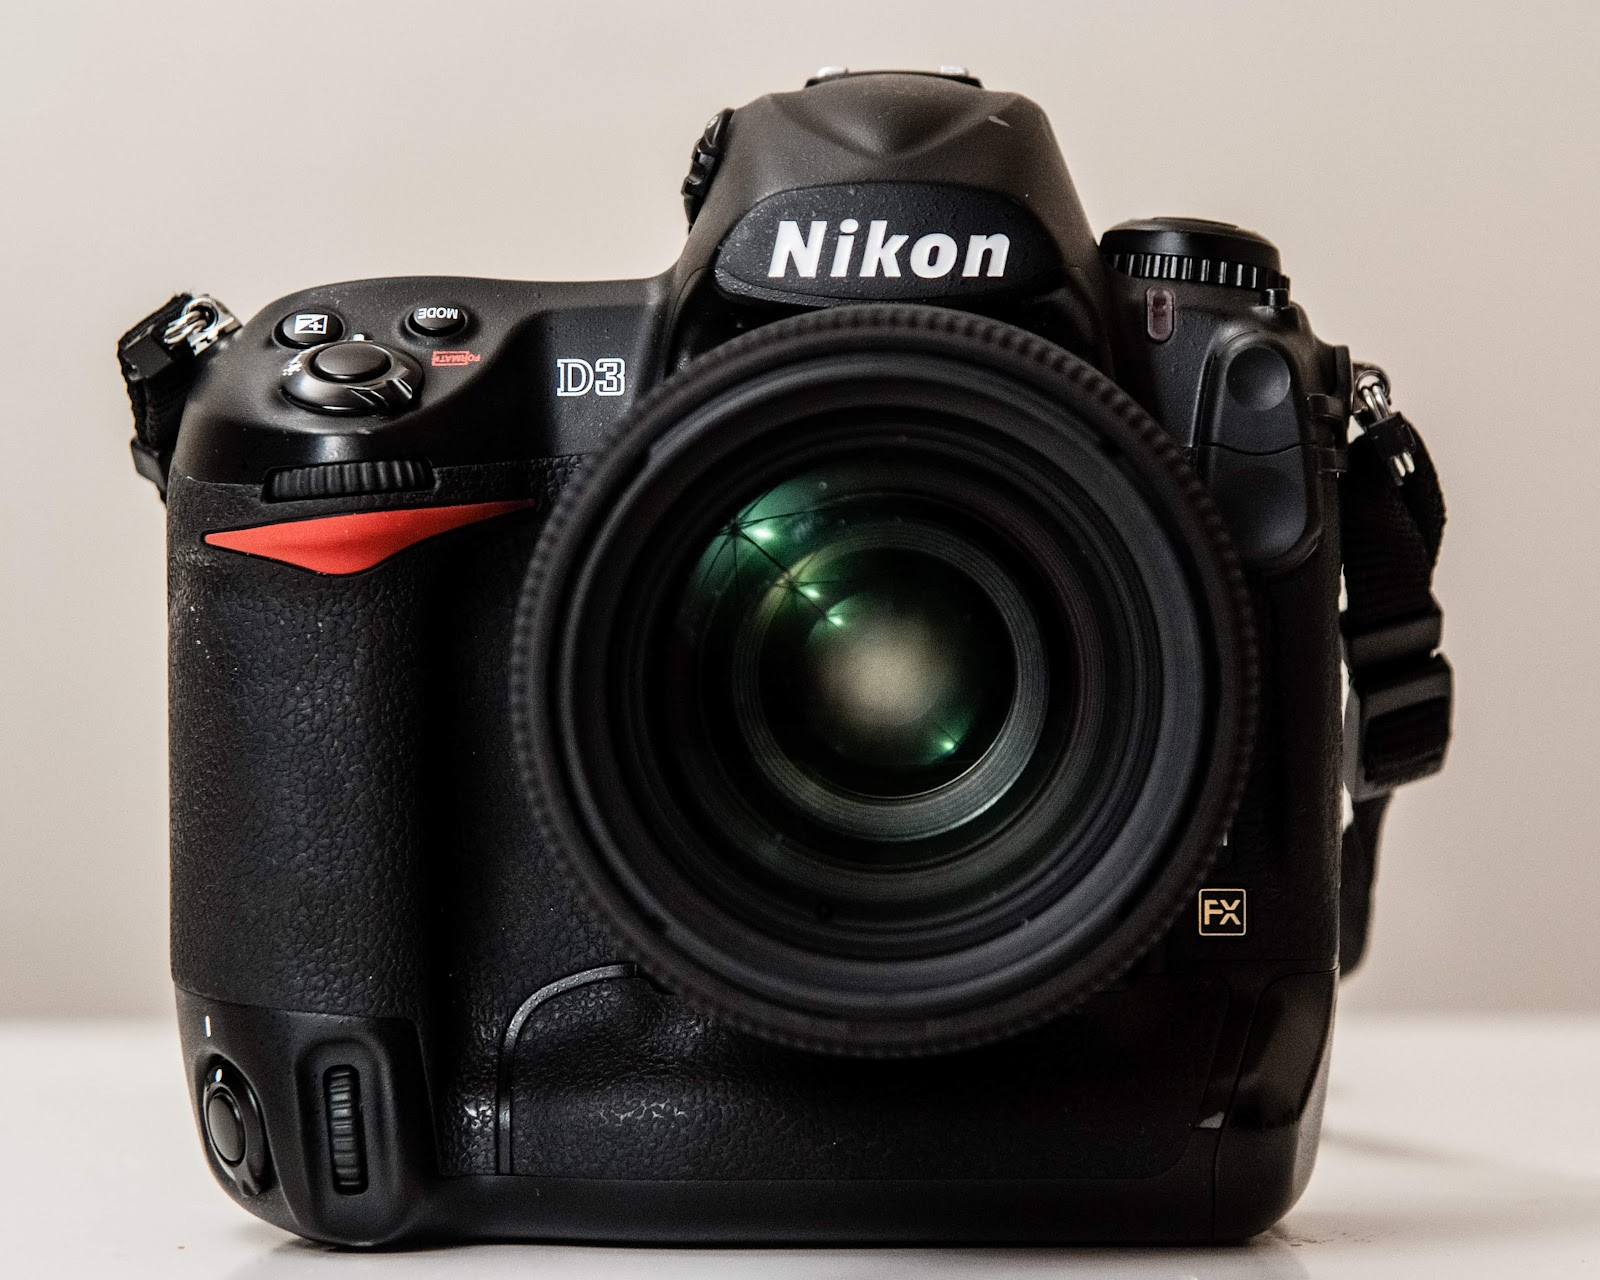 Better Family Photos: Nikon D3 First Impressions